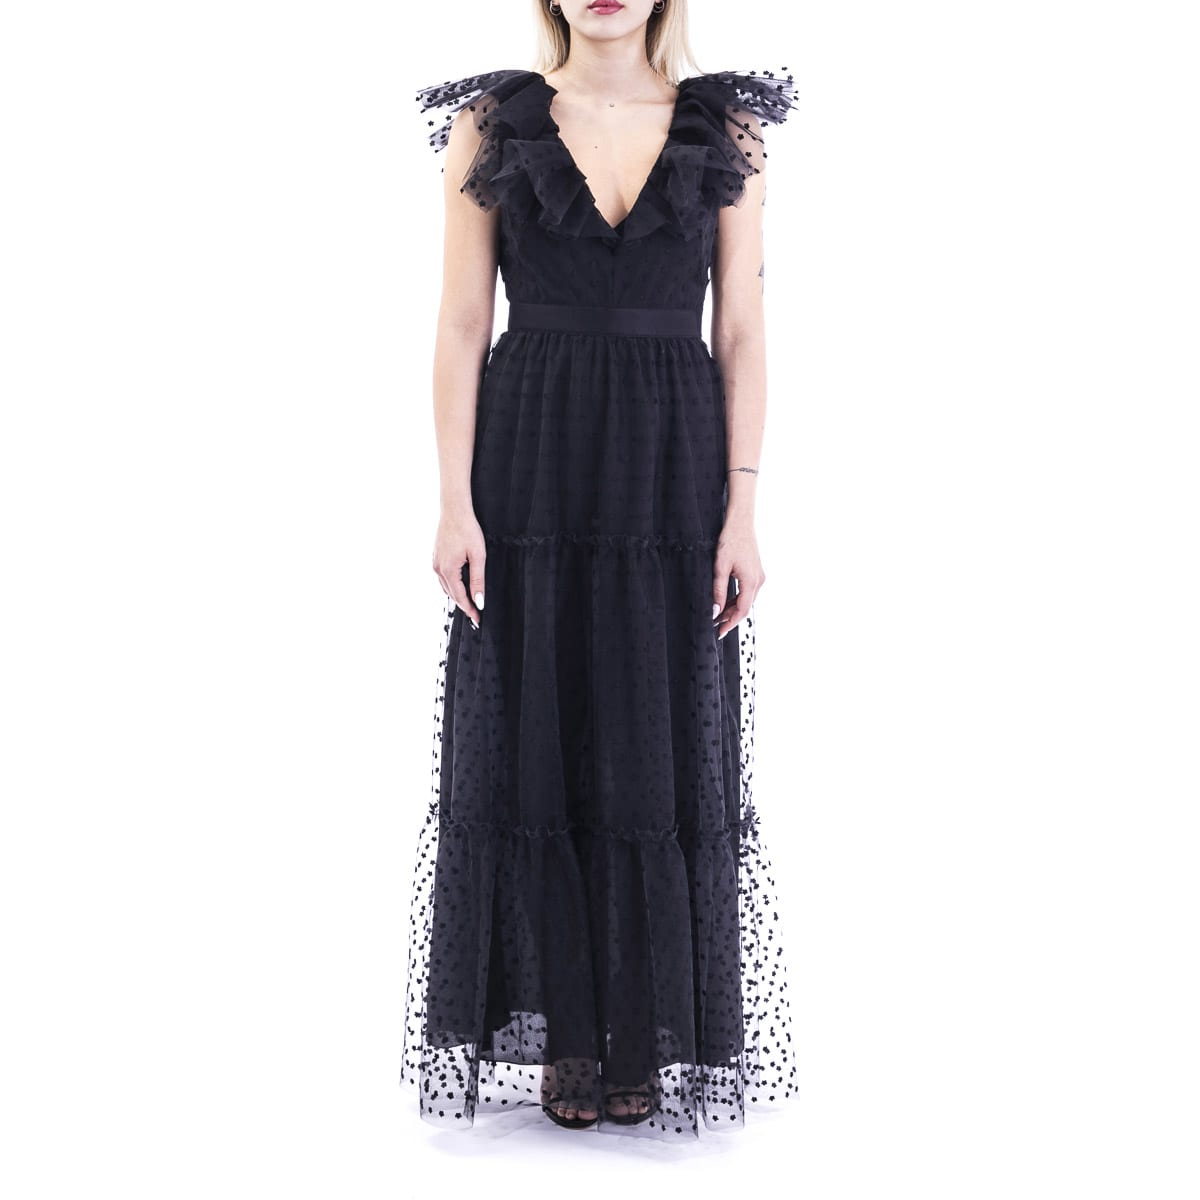 Buy Philosophy Of Lorenzo Serafini Mesh Dress online, shop Philosophy di Lorenzo Serafini with free shipping